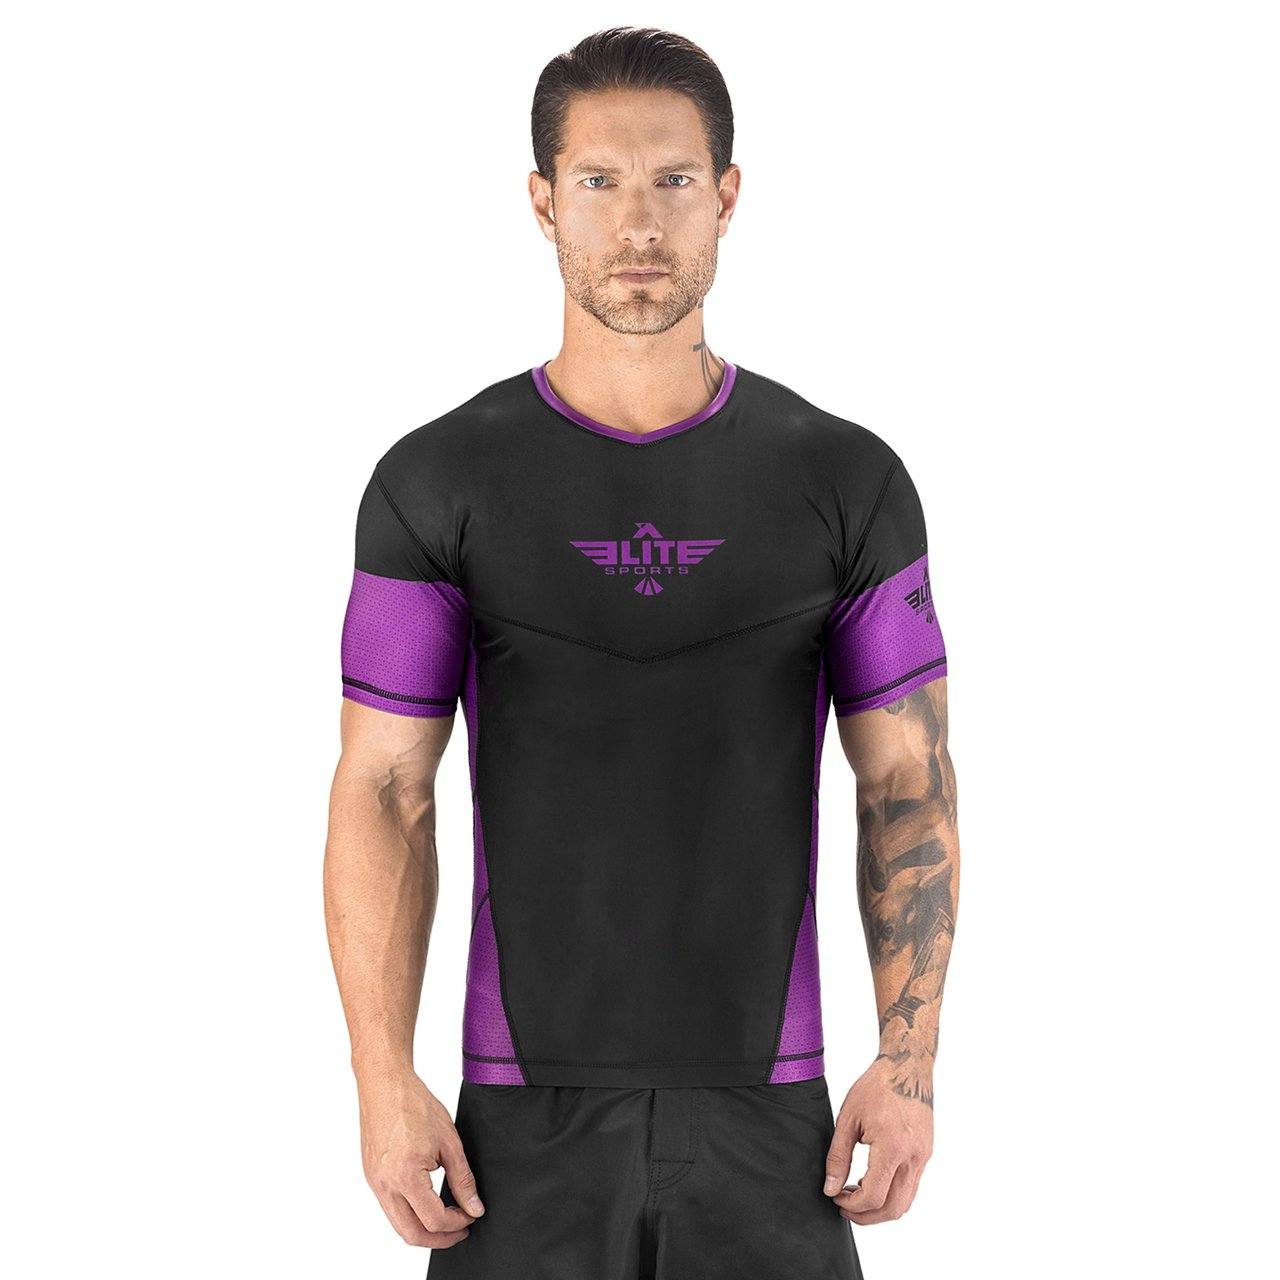 Load image into Gallery viewer, Elite Sports Honey Comb Sublimation Black/Purple Short Sleeve Wrestling Rash Guard